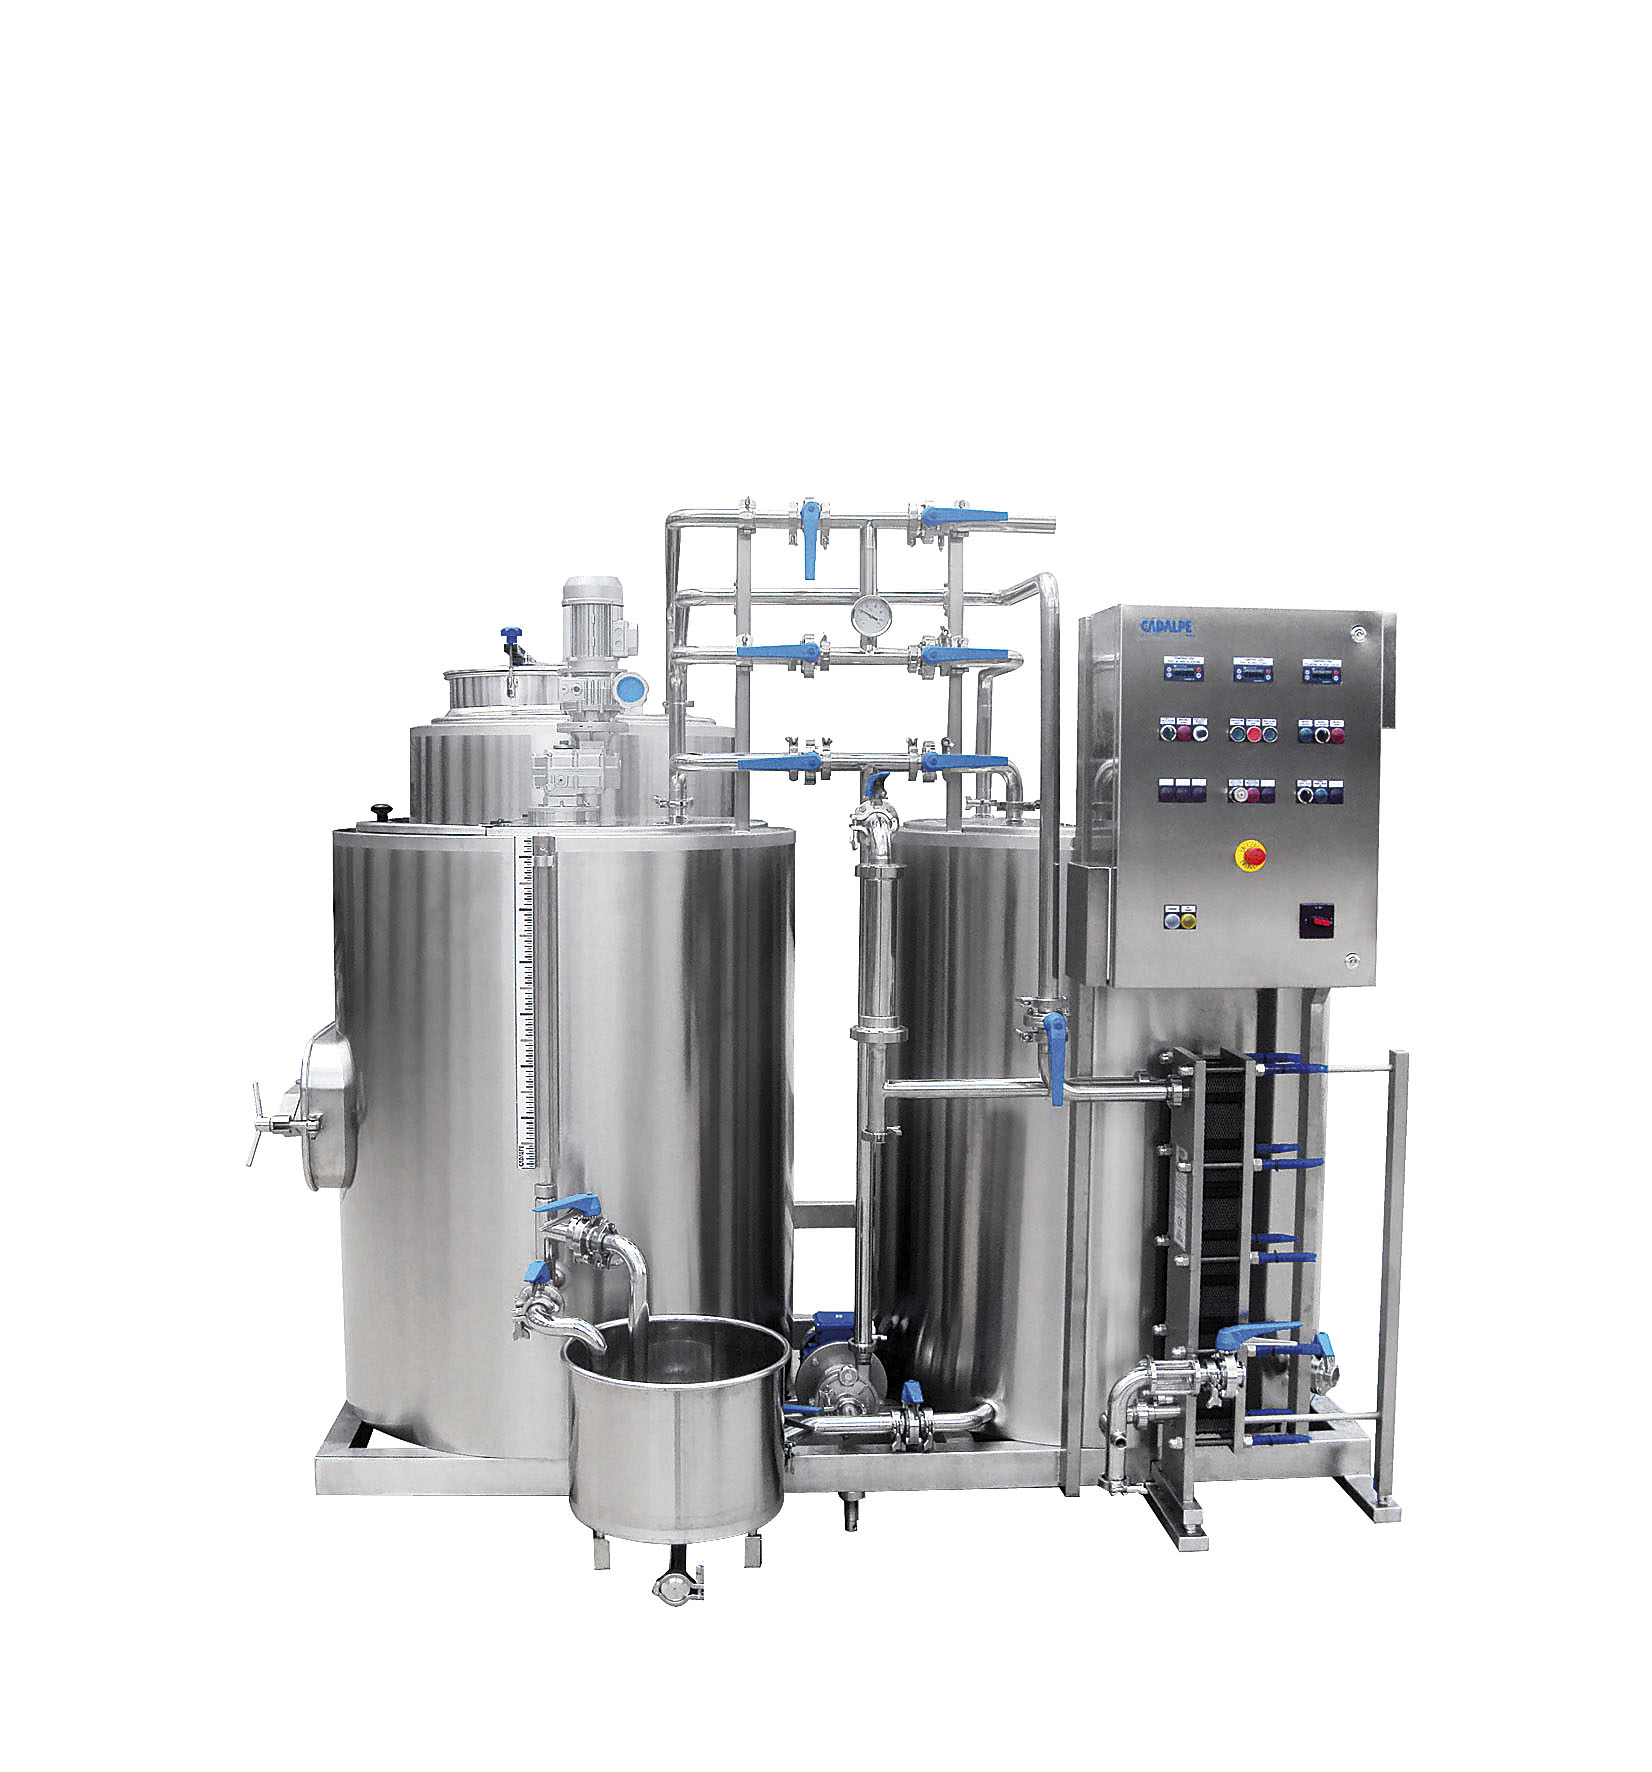 Product picture of C49M Brewing system